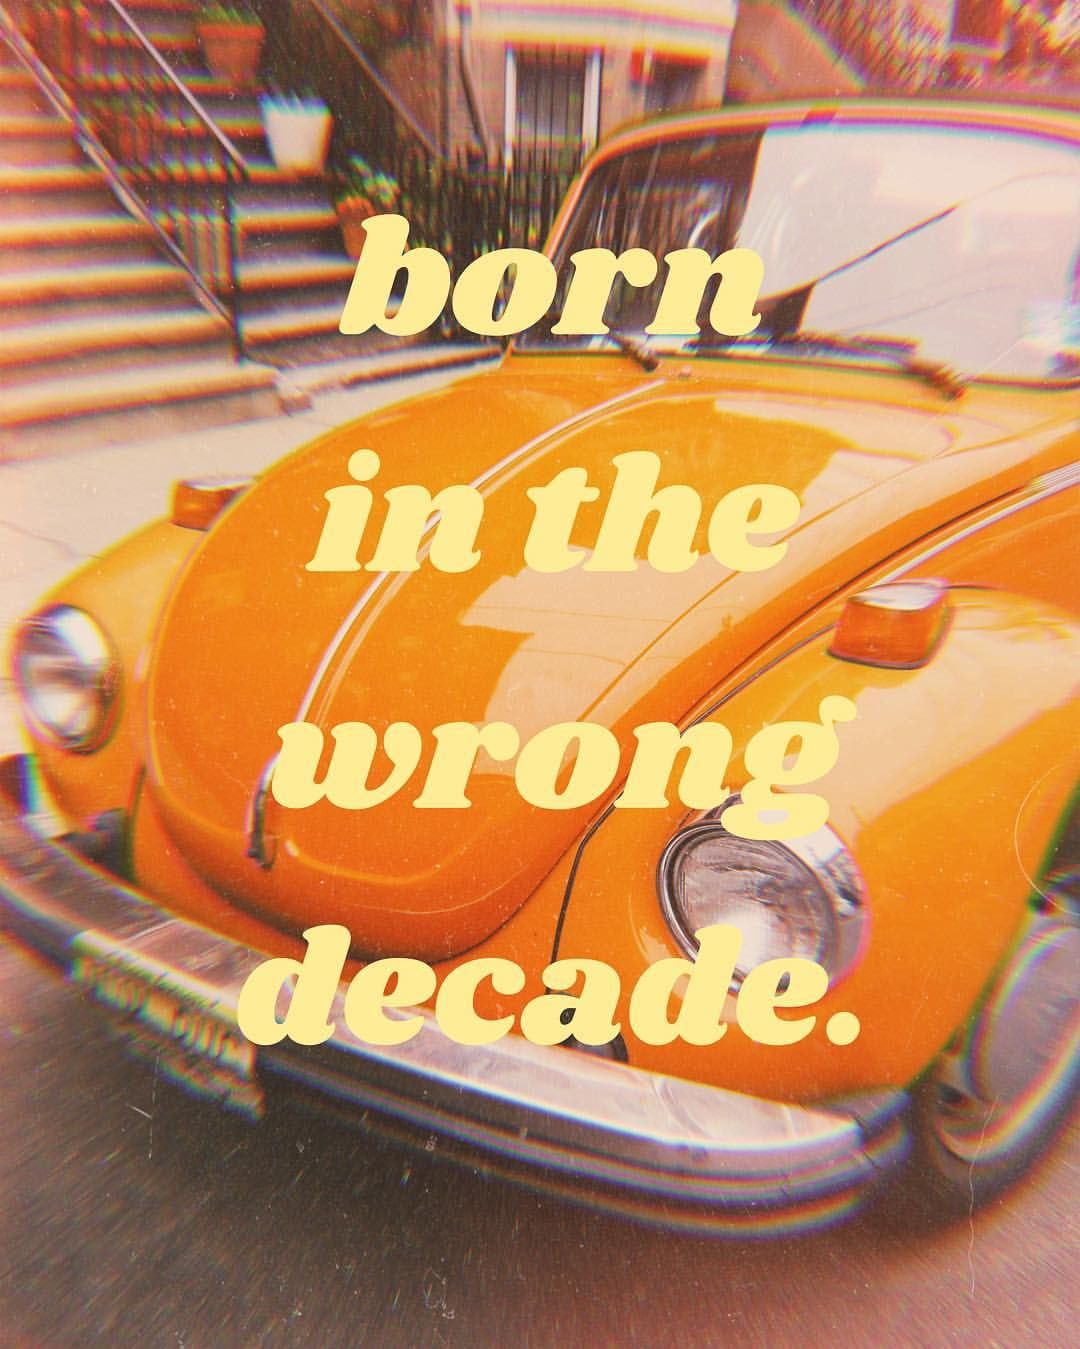 born in the wrong decade | tumblr quote | tumblr aesthetic | aesthetic photo | vintage vibes | retro vibes | vintage aesthetic | retro aesthetic | vintage mood | retro mood | vintage | retro #yellowaestheticvintage